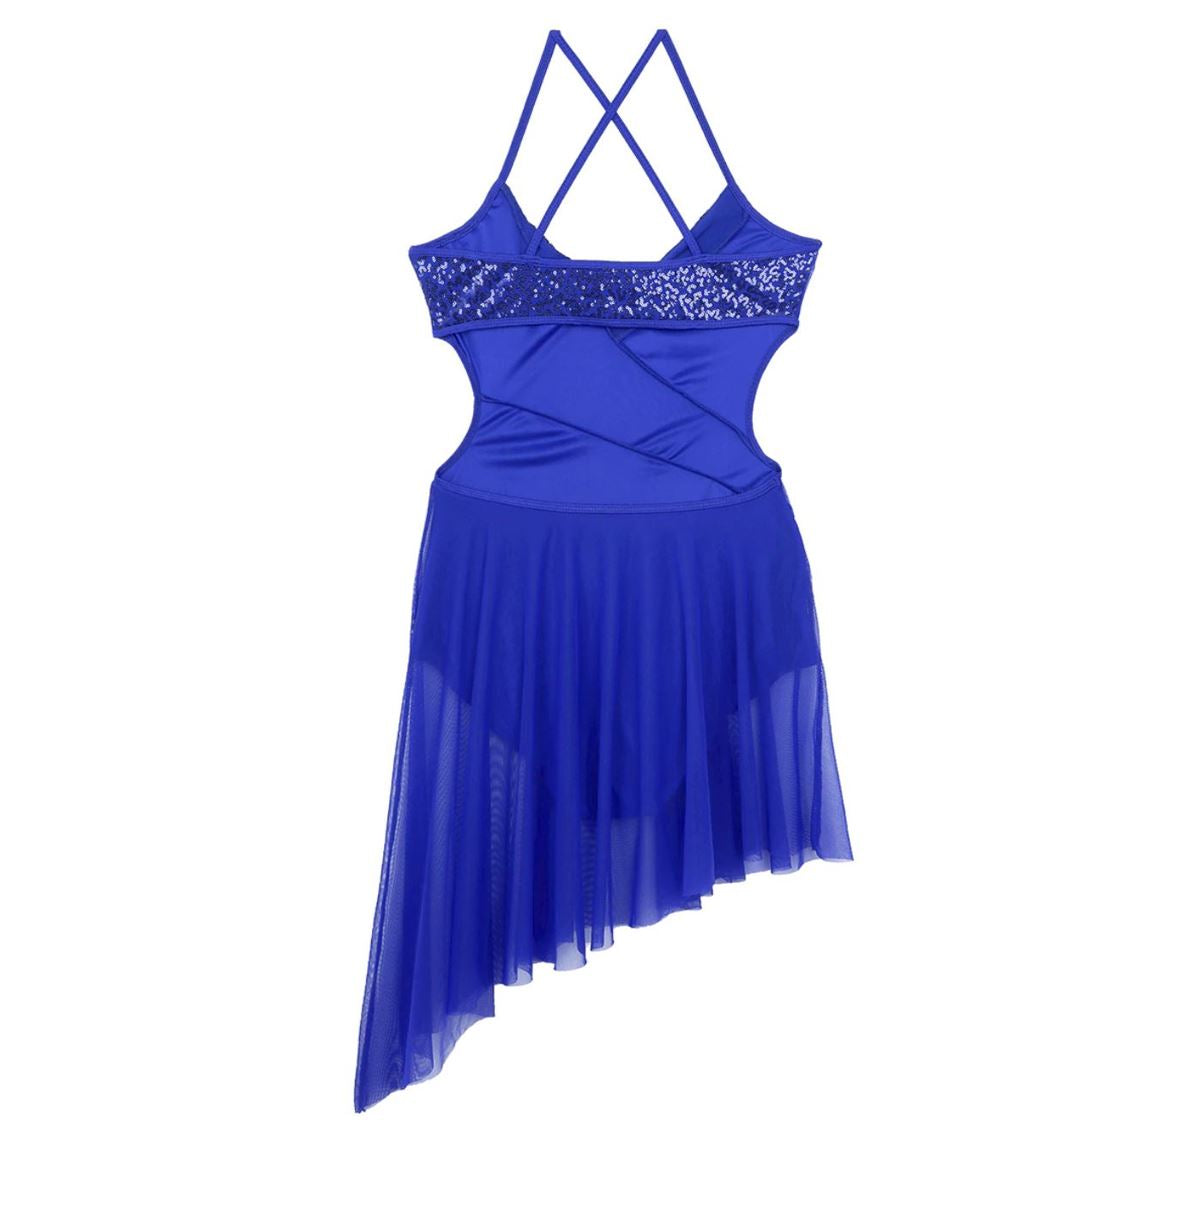 Blue in colour, leotard dress with side hollow out, side cut out, spaghetti shoulder straps. Pas de bourree dancewear. Pasdebourreedancewear.